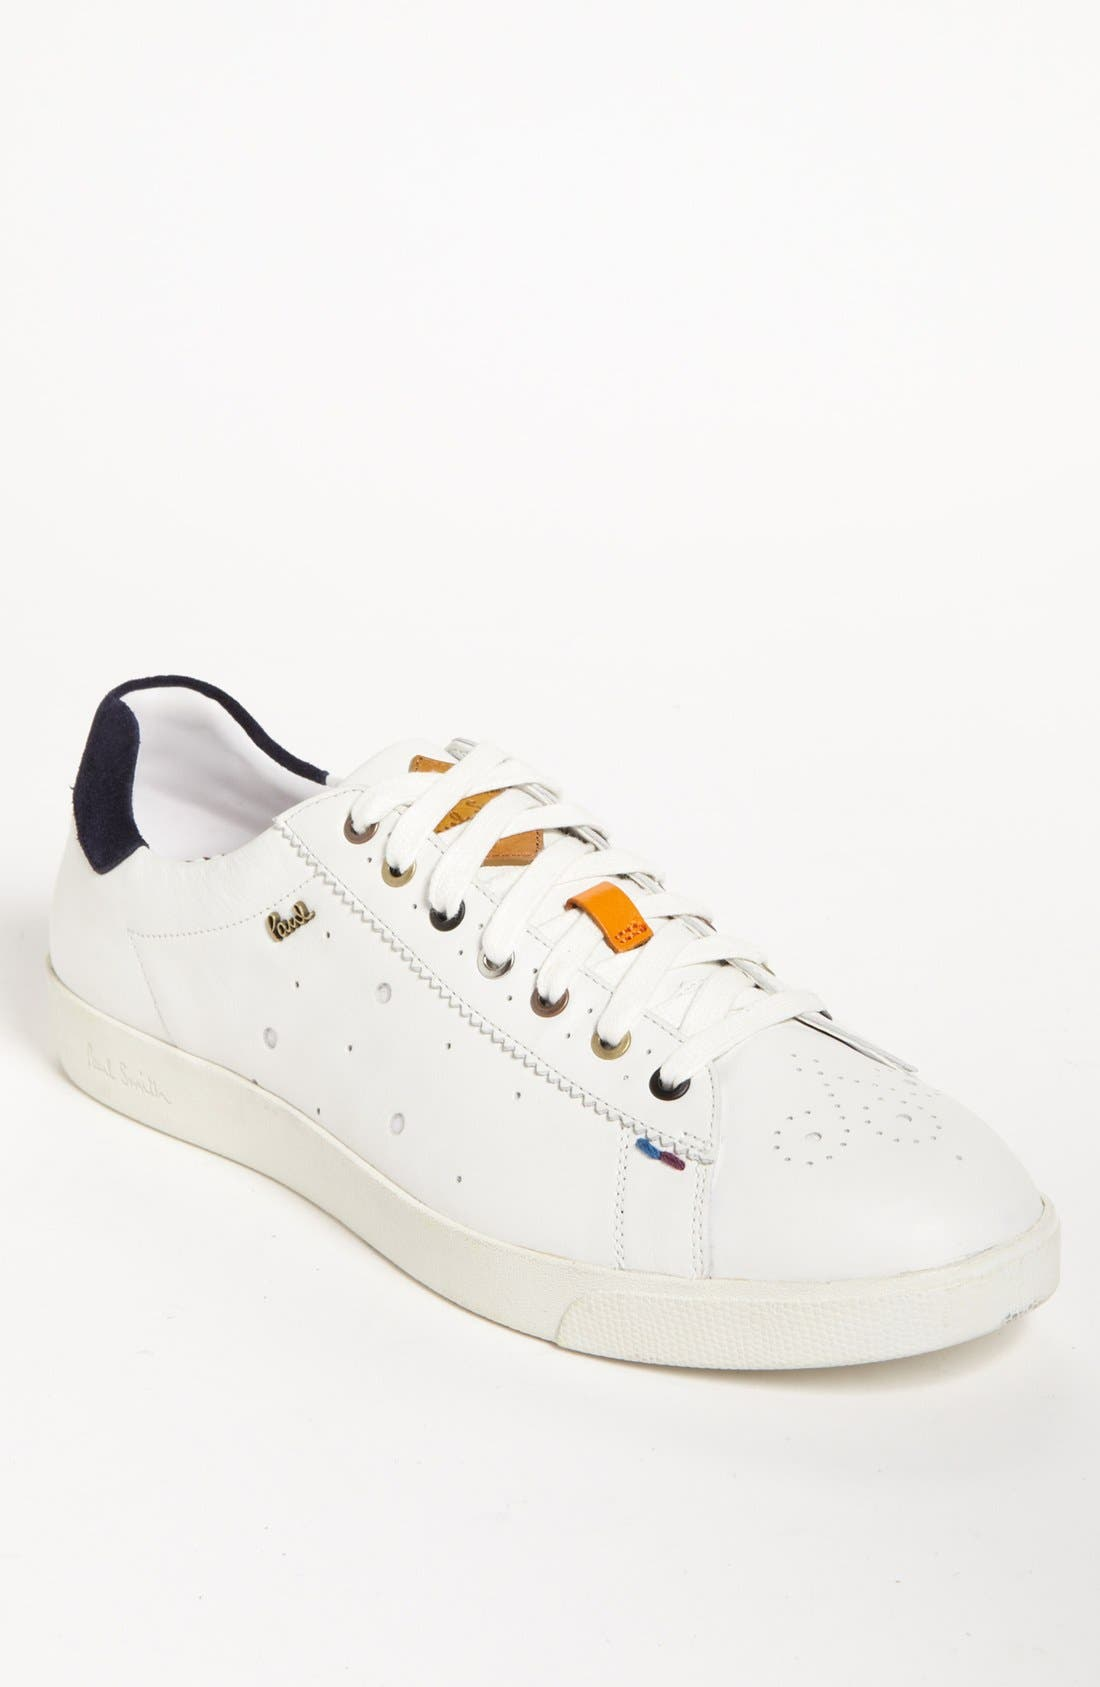 Alternate Image 1 Selected - Paul Smith 'Lepus' Sneaker